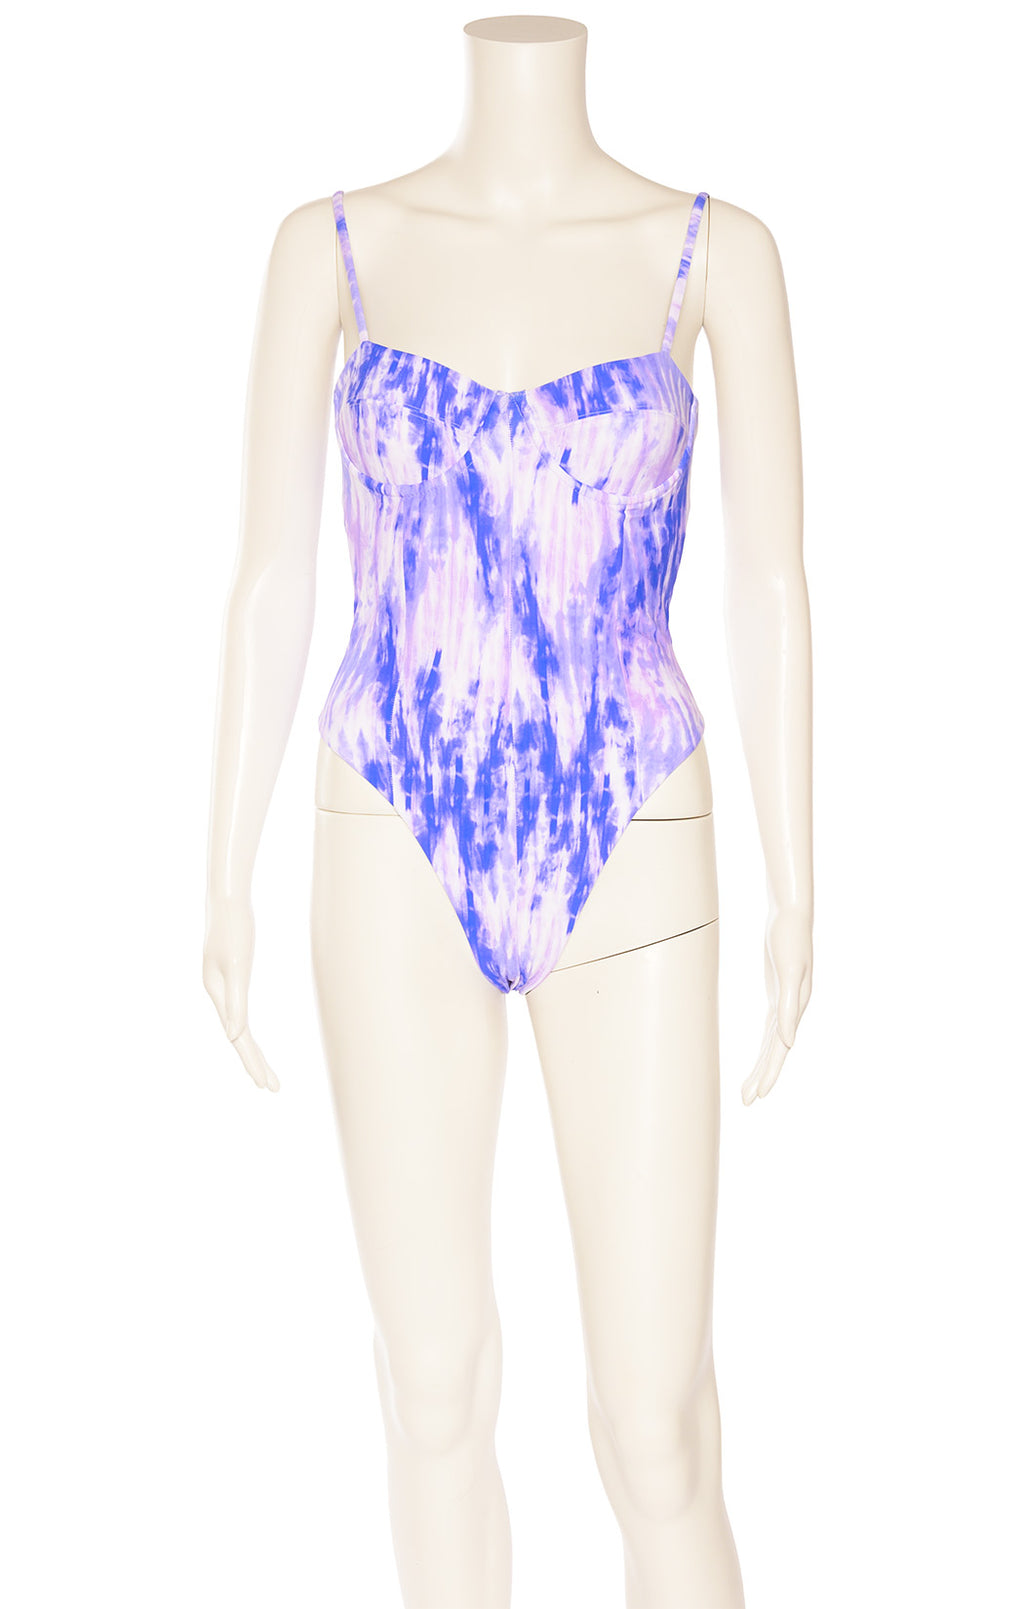 Purple tie dye one piece bathing suit with bra cup and back hook closure